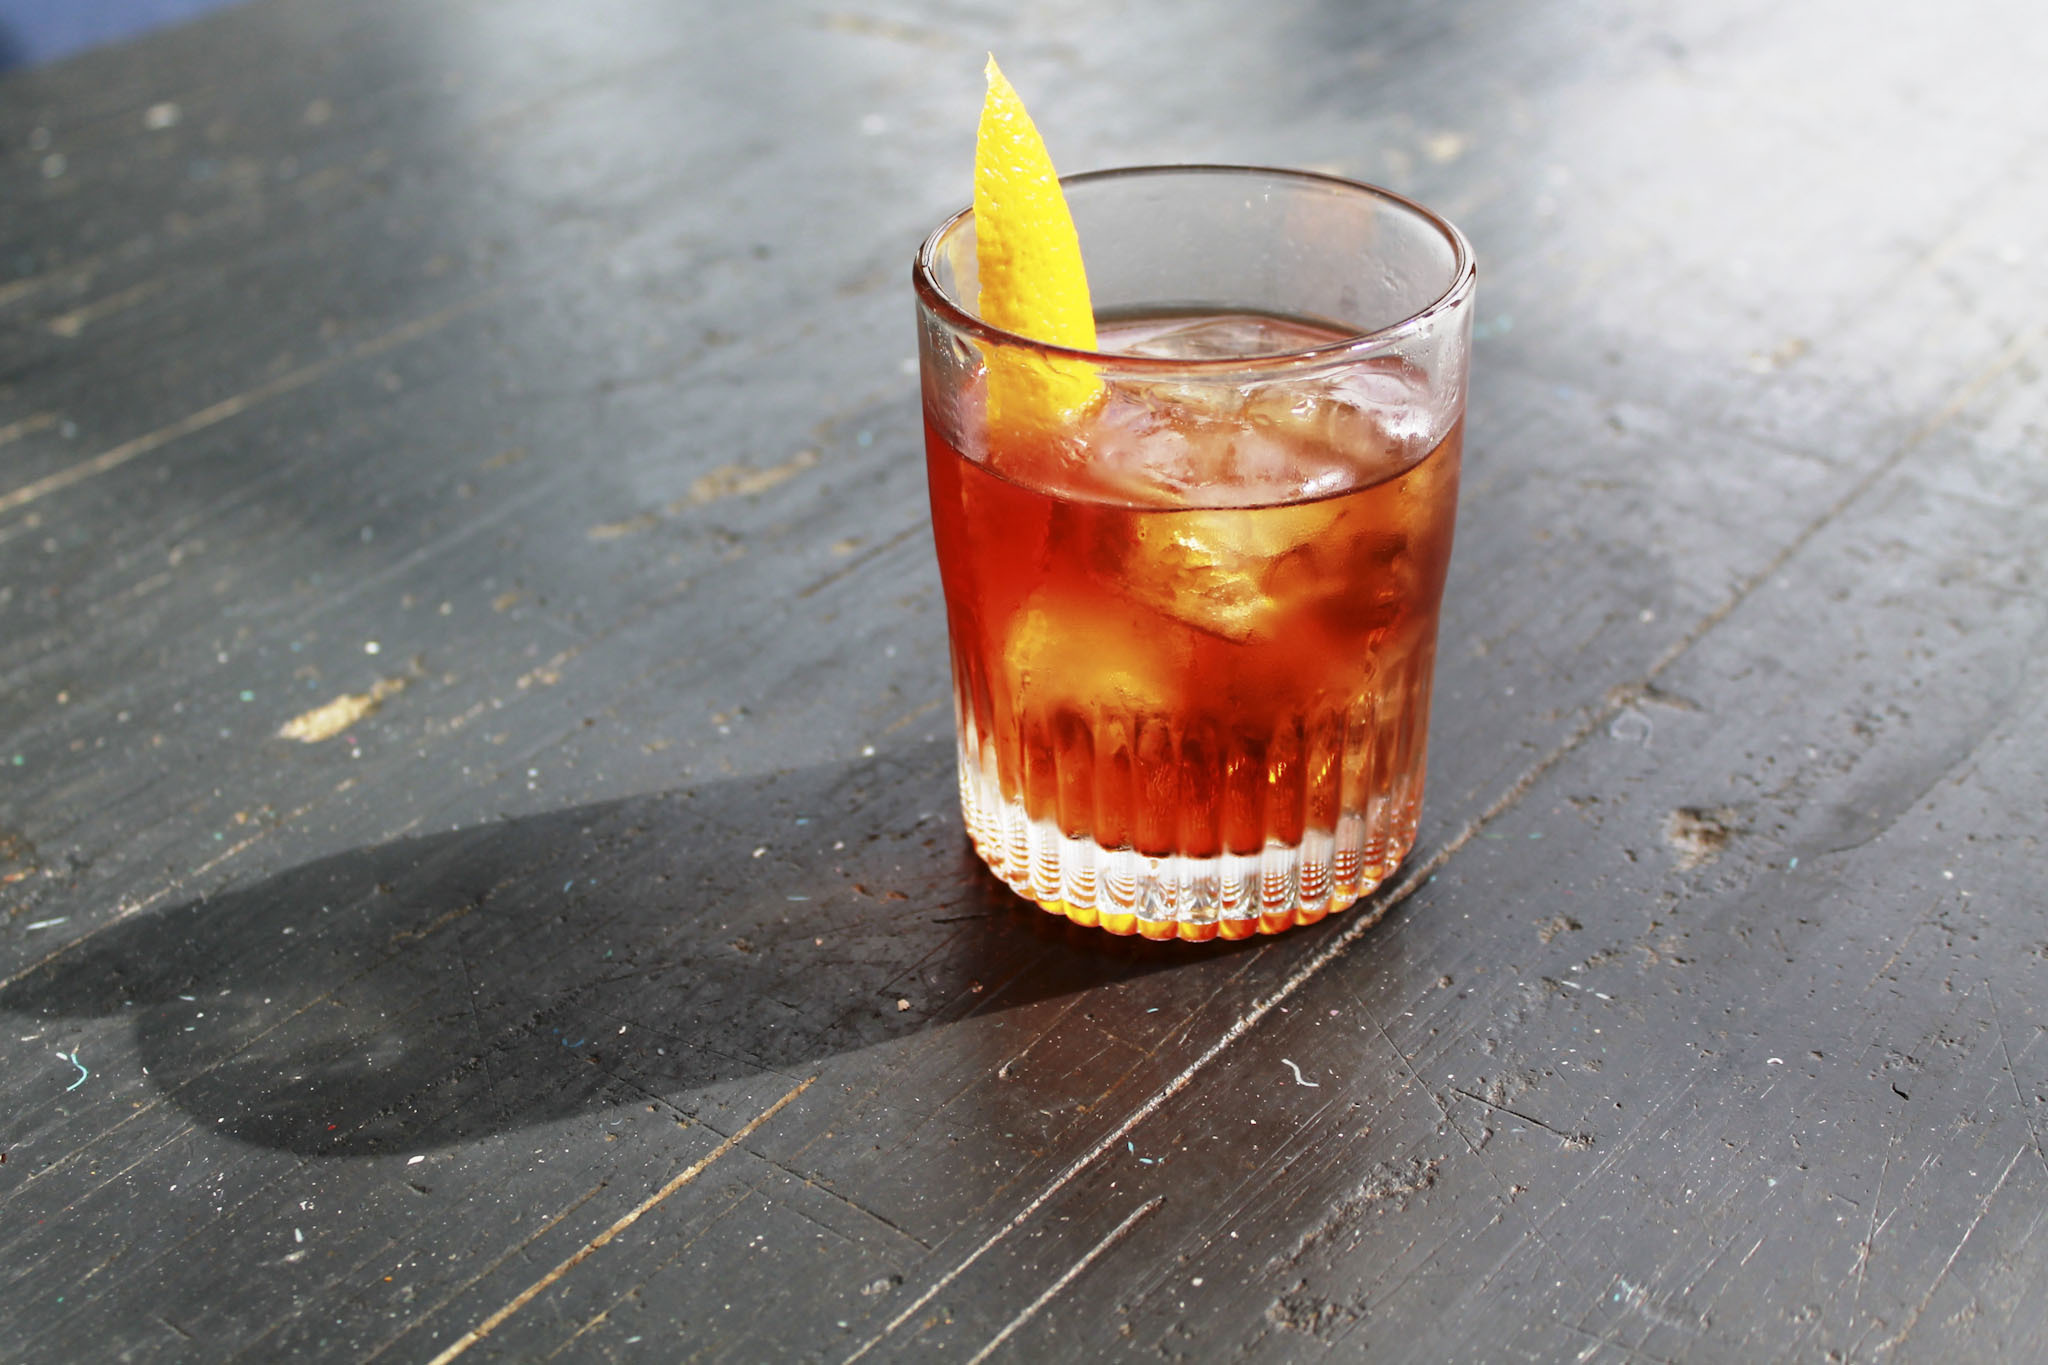 Old Fashioned at Cindy's